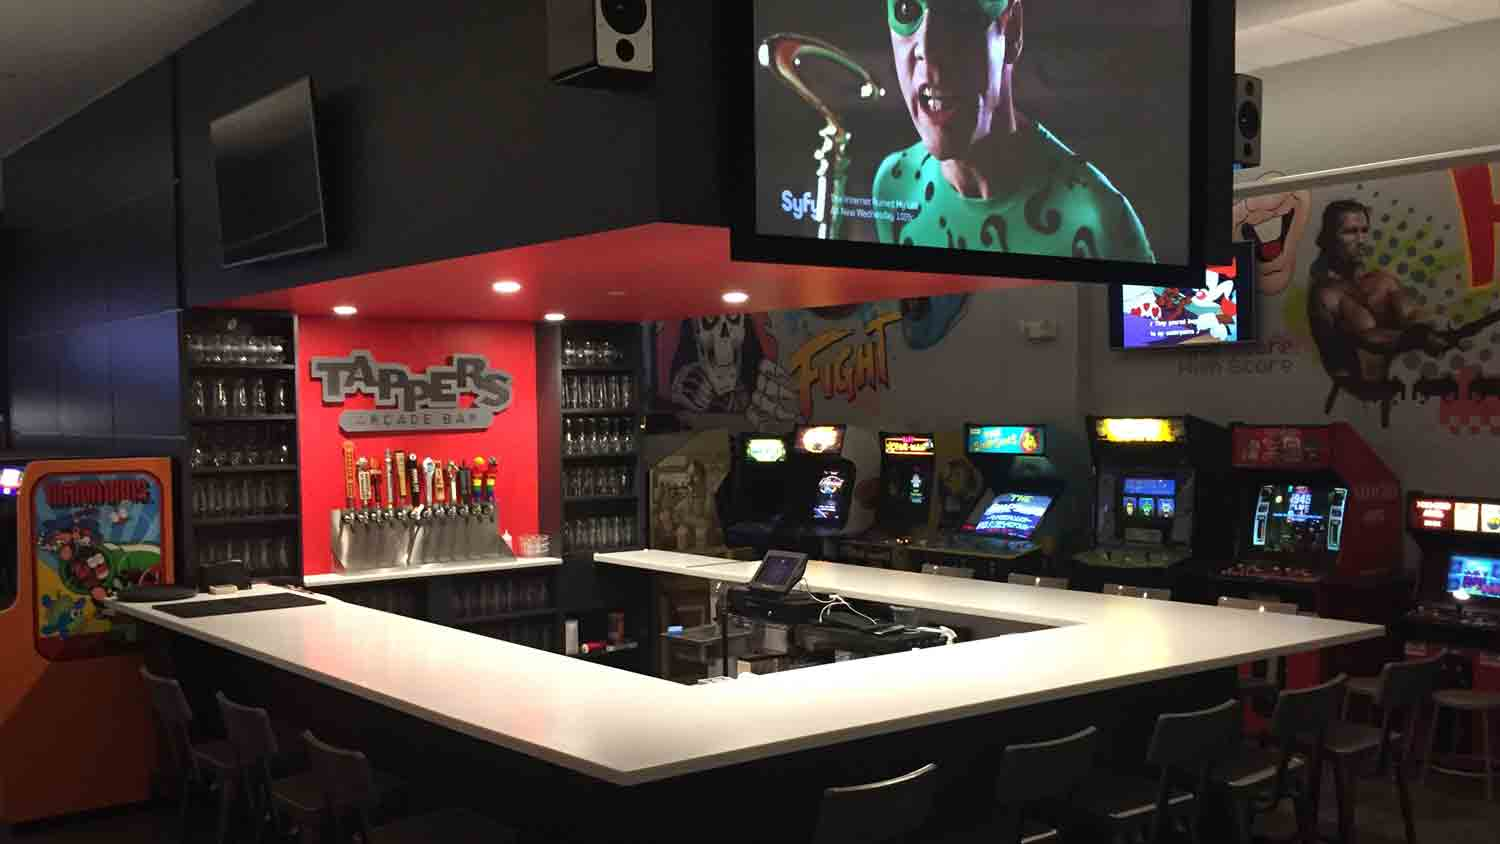 Tappers Arcade Bar 15